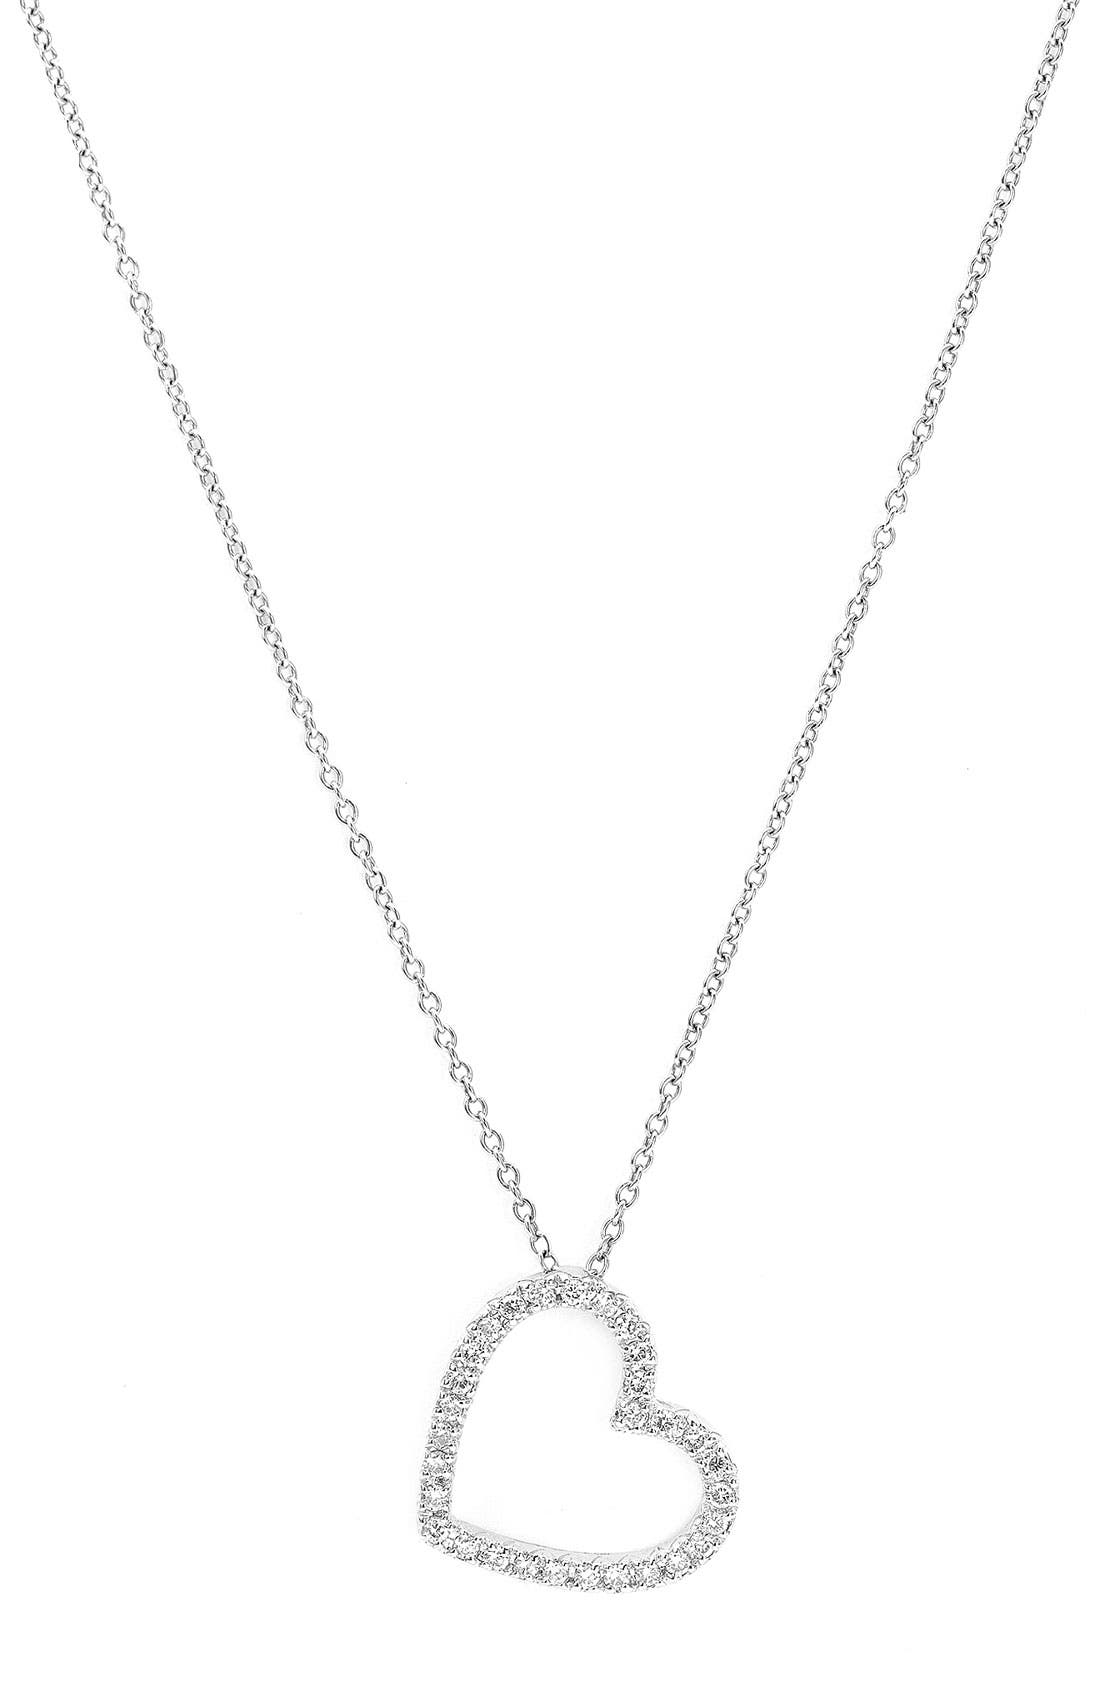 Main Image - Kwiat Small Silhouette Diamond Necklace